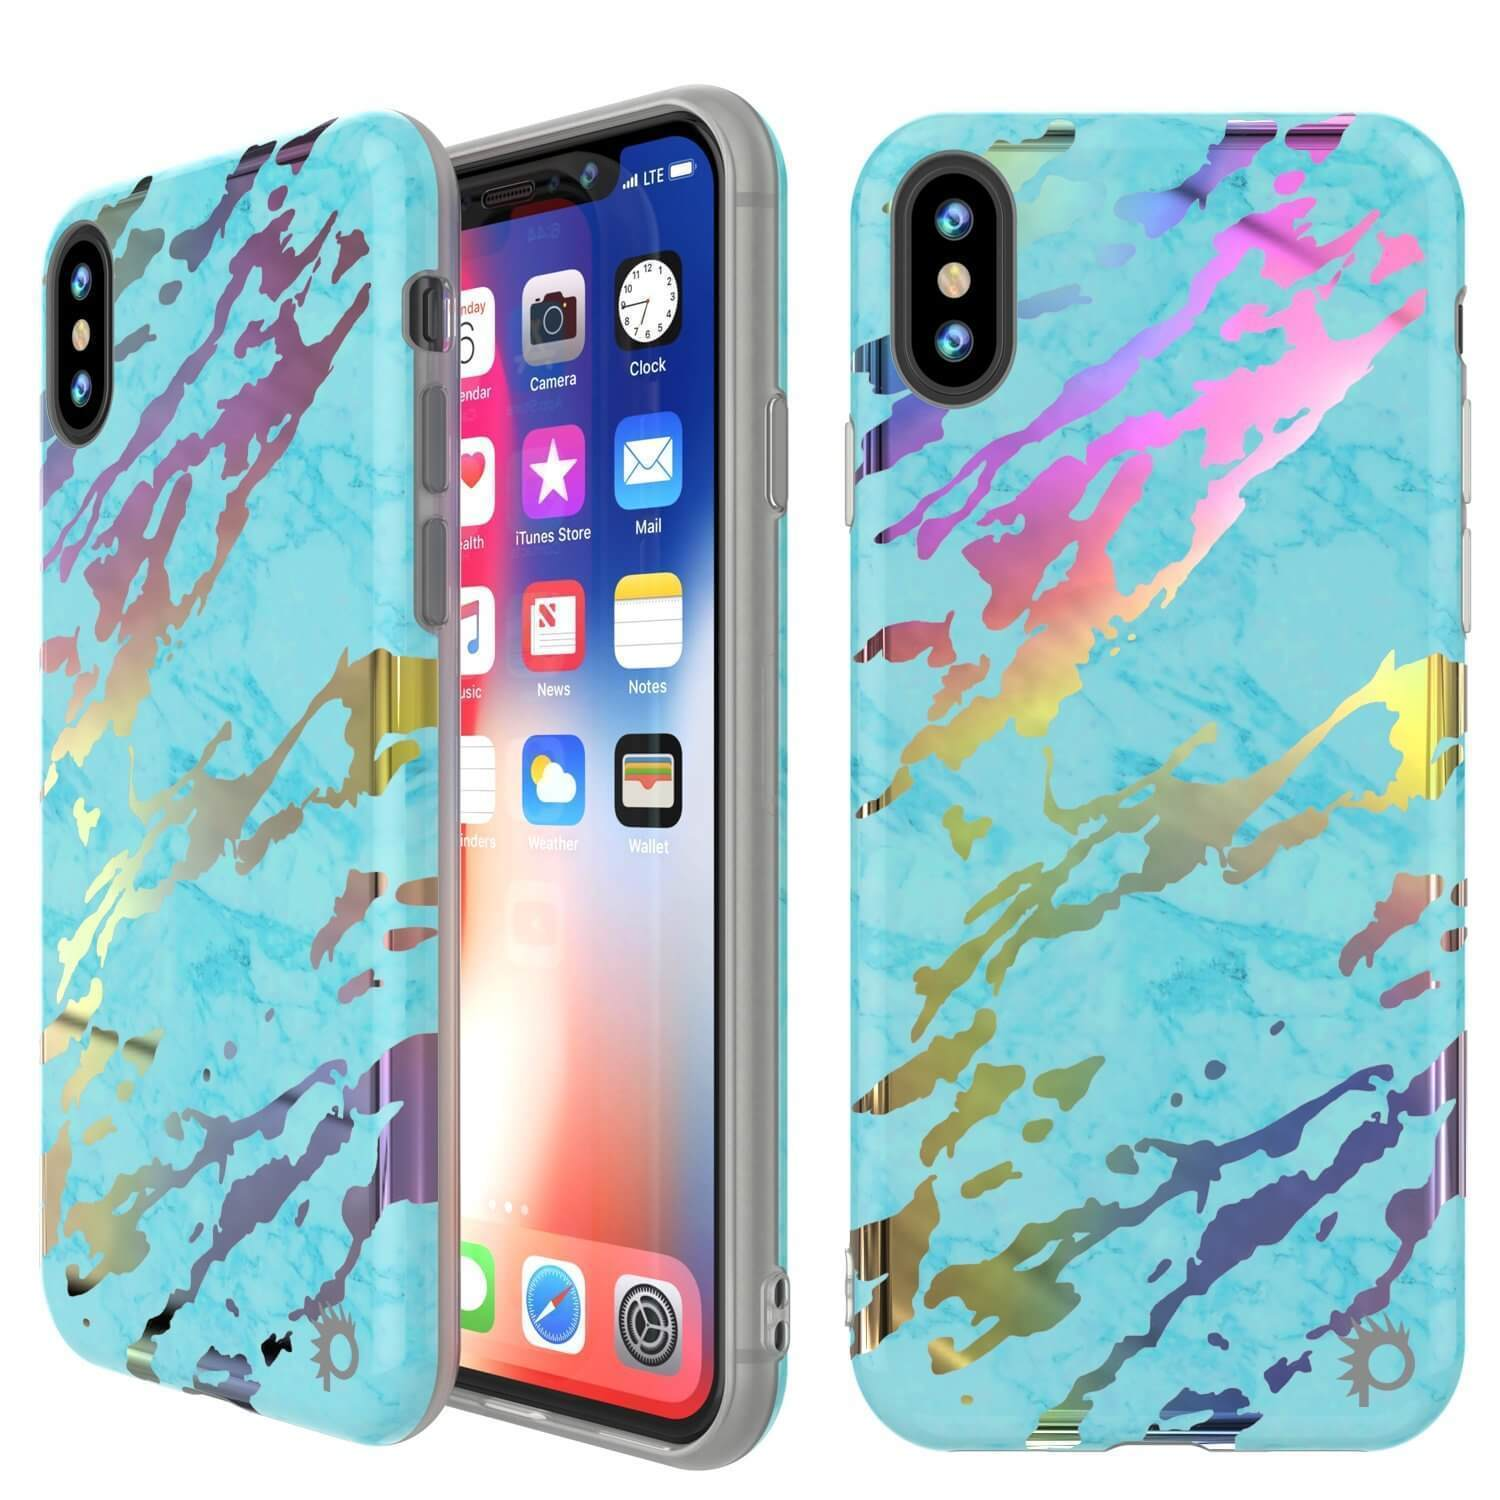 Punkcase iPhone XR Marble Case, Protective Full Body Cover Protector (Teal Onyx)